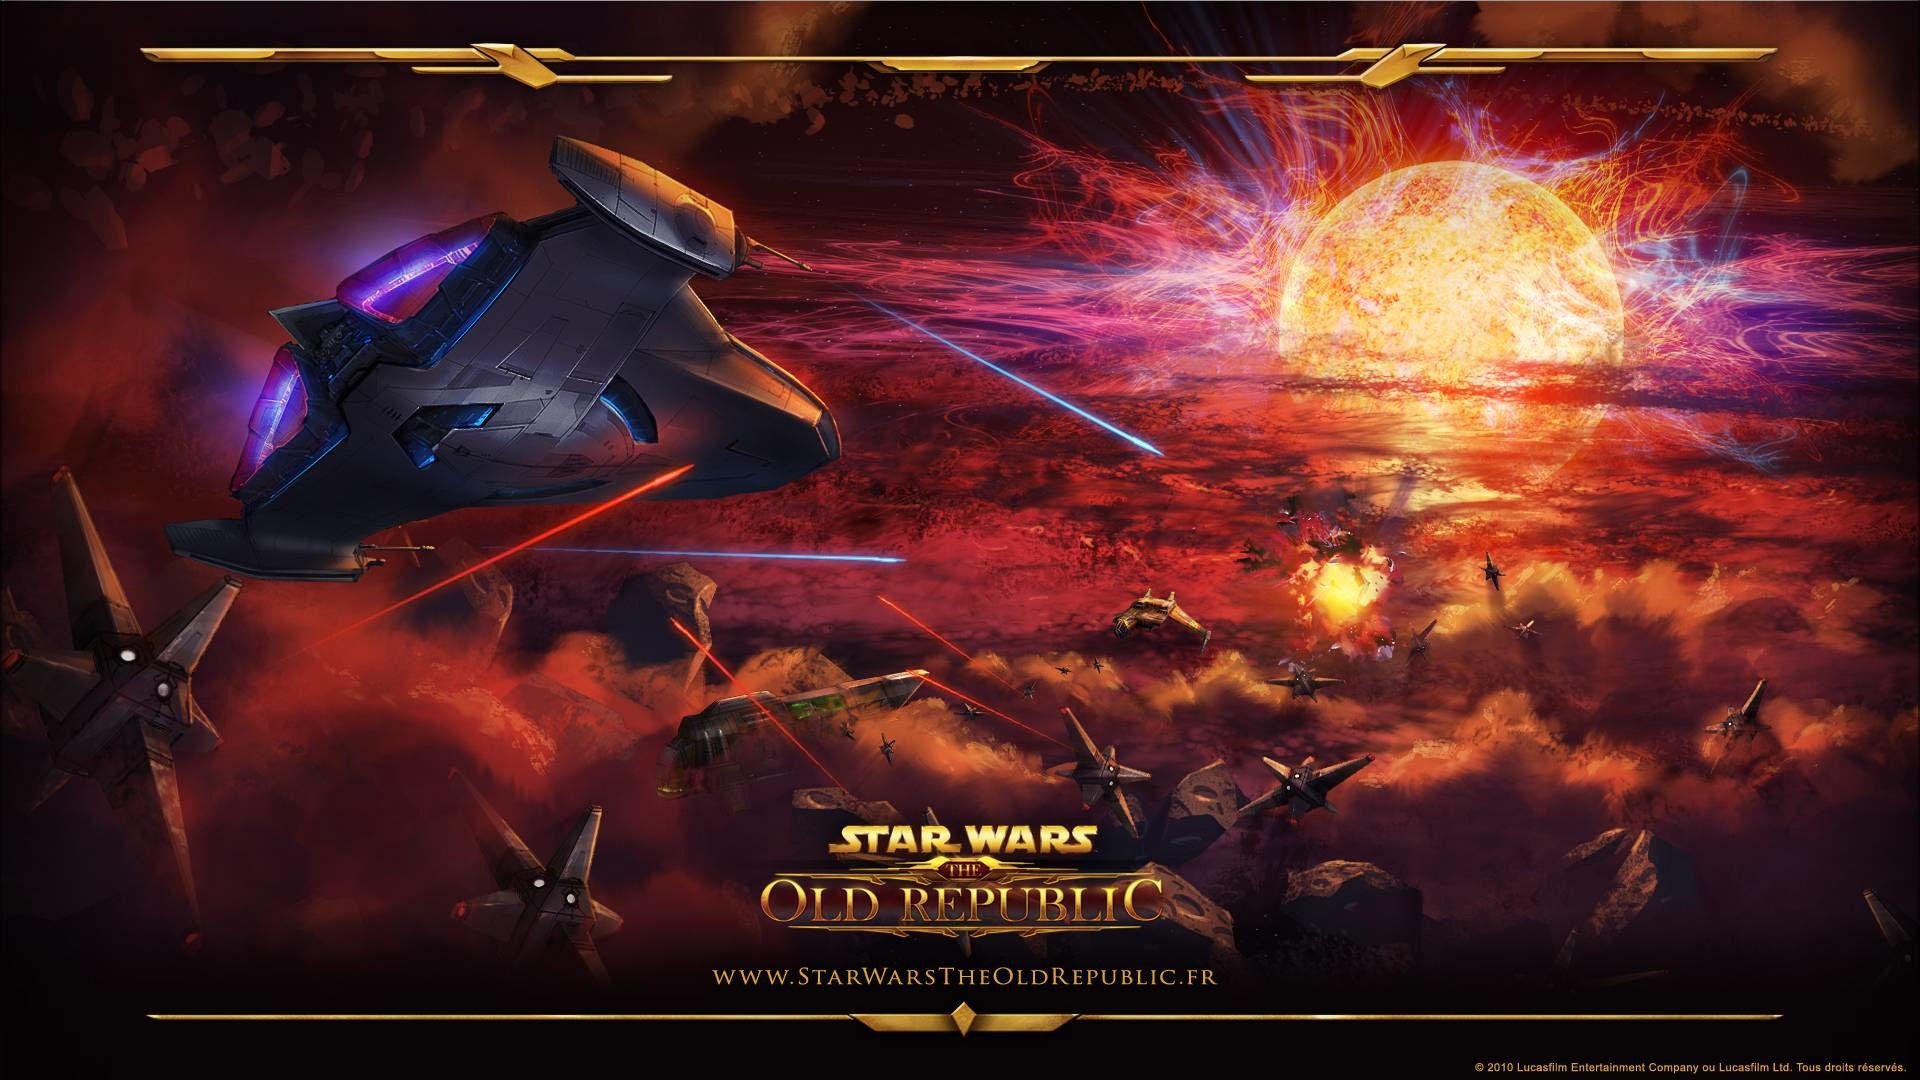 1920x1080 Star Wars Old Republic Cosmic Warship Video Games Desktop .